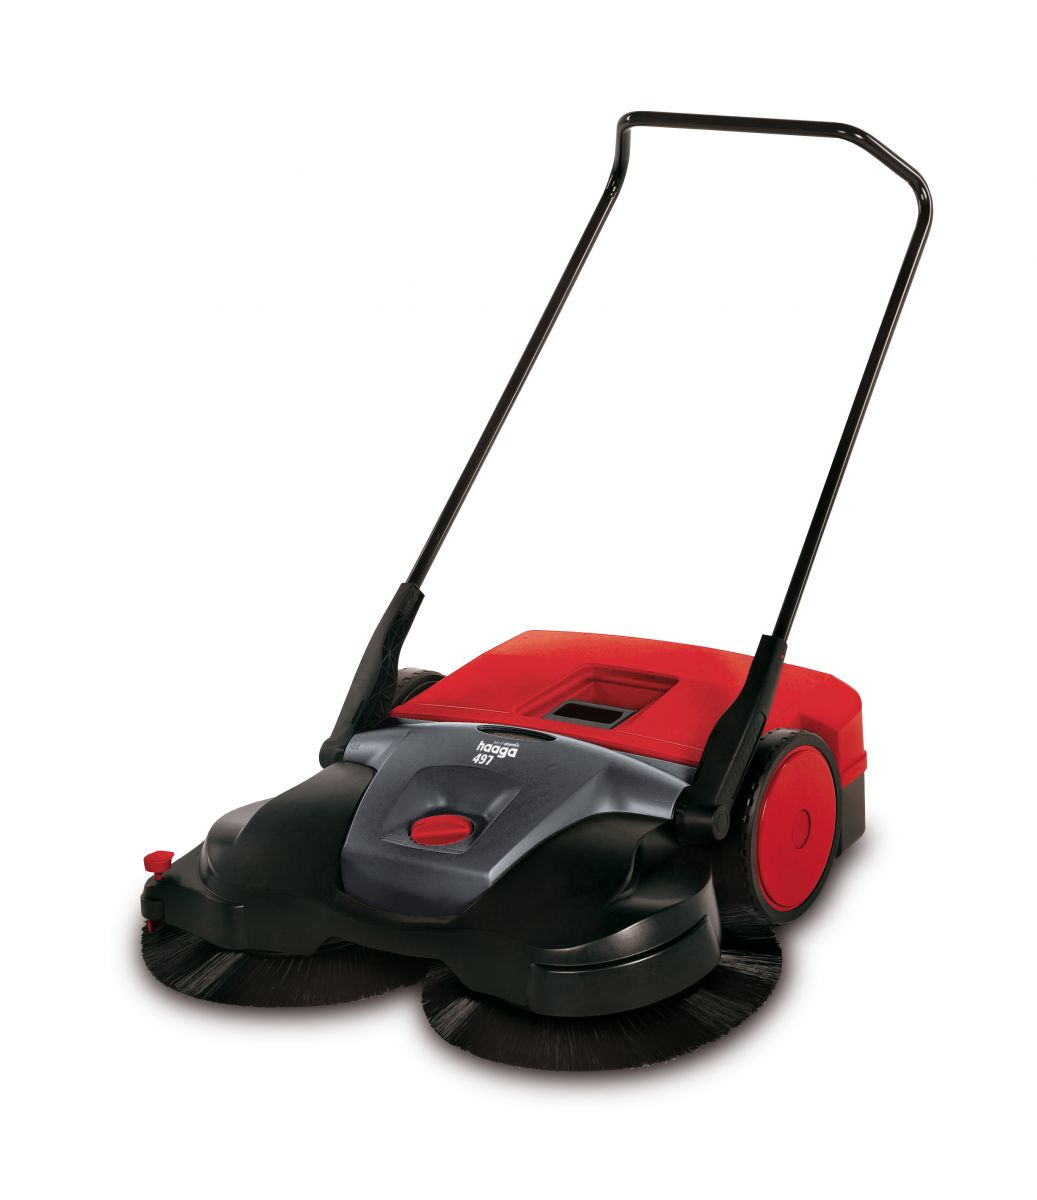 Sweeper haaga 477 Profi, Turbo sweeping system